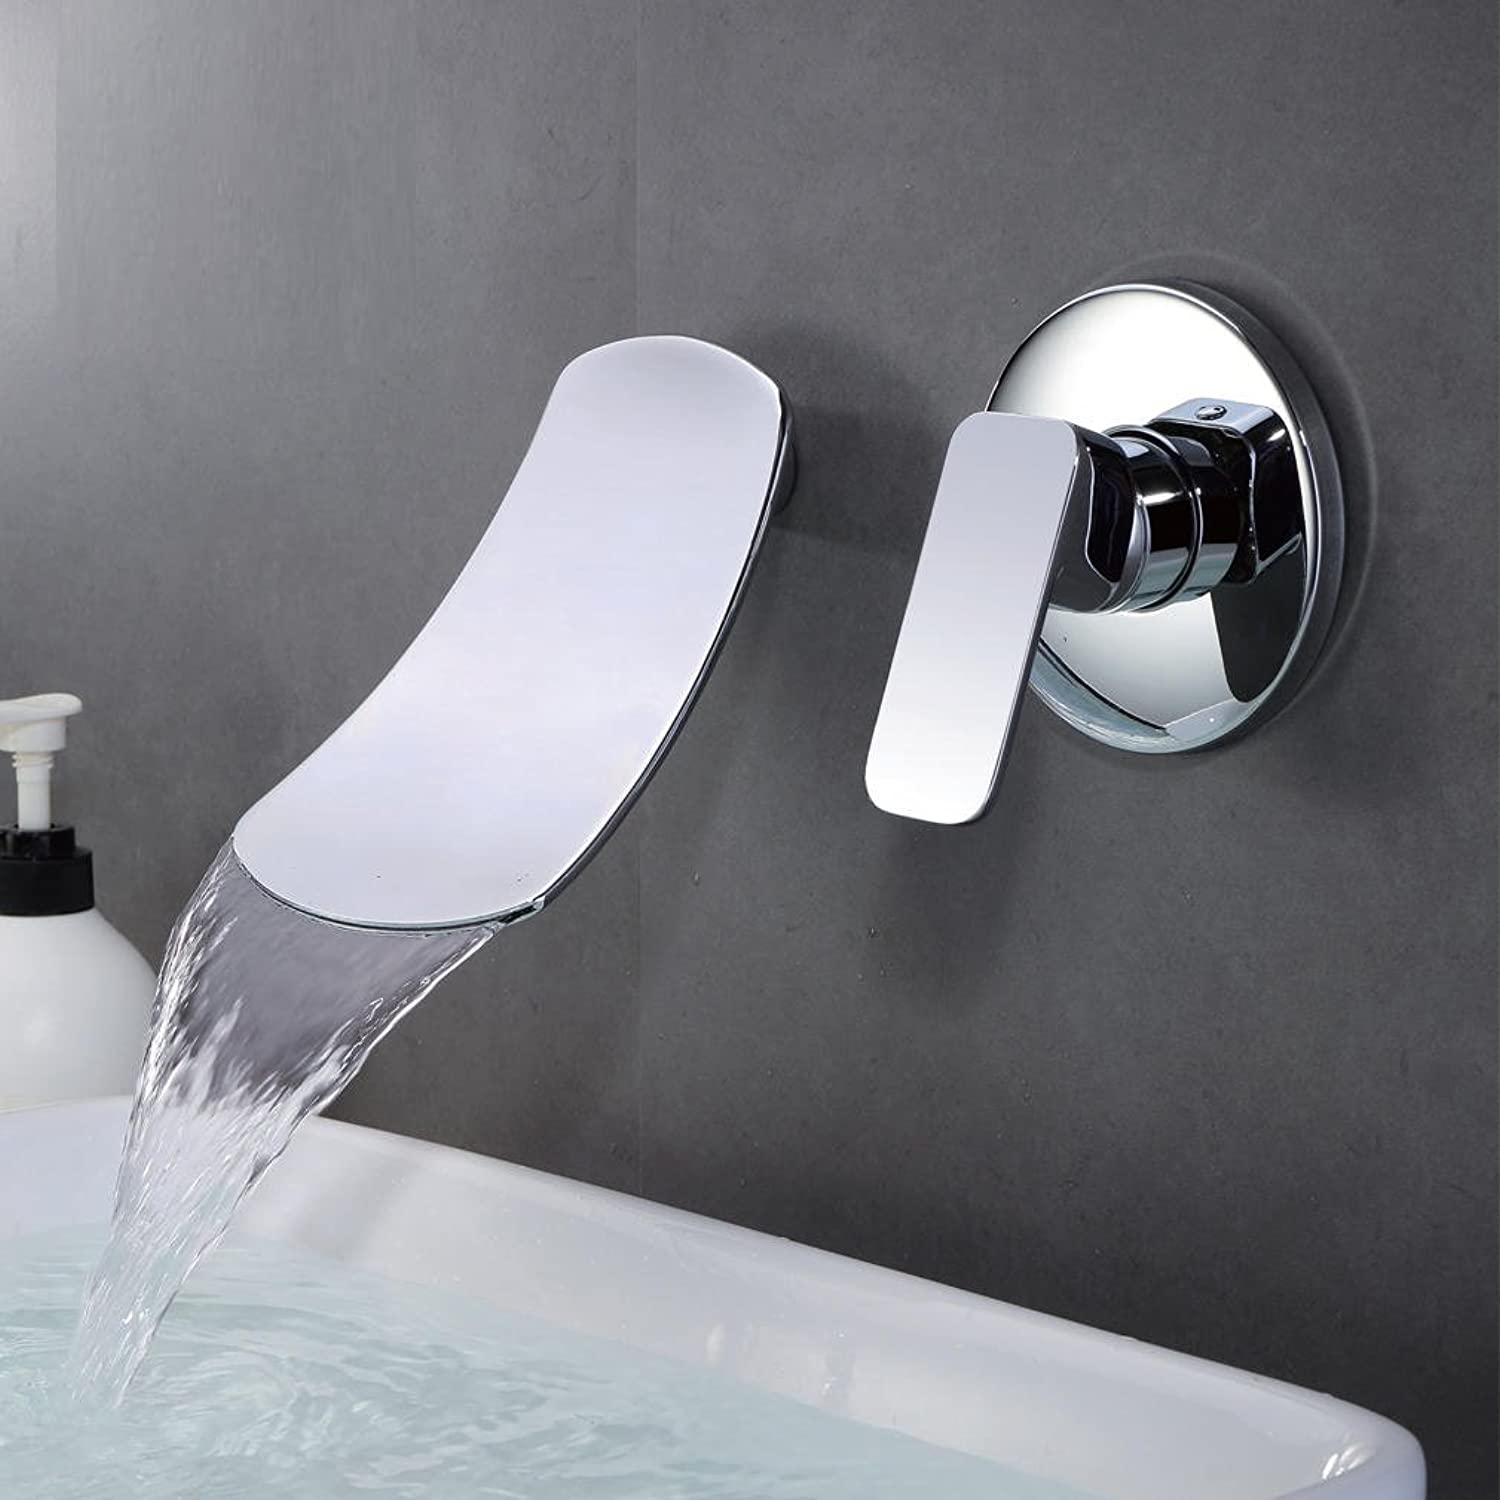 WINZSC Wall - entry waterfall faucet 304 stainless steel washbasin faucet 4 interface cold and hot mixed faucet wx5251510